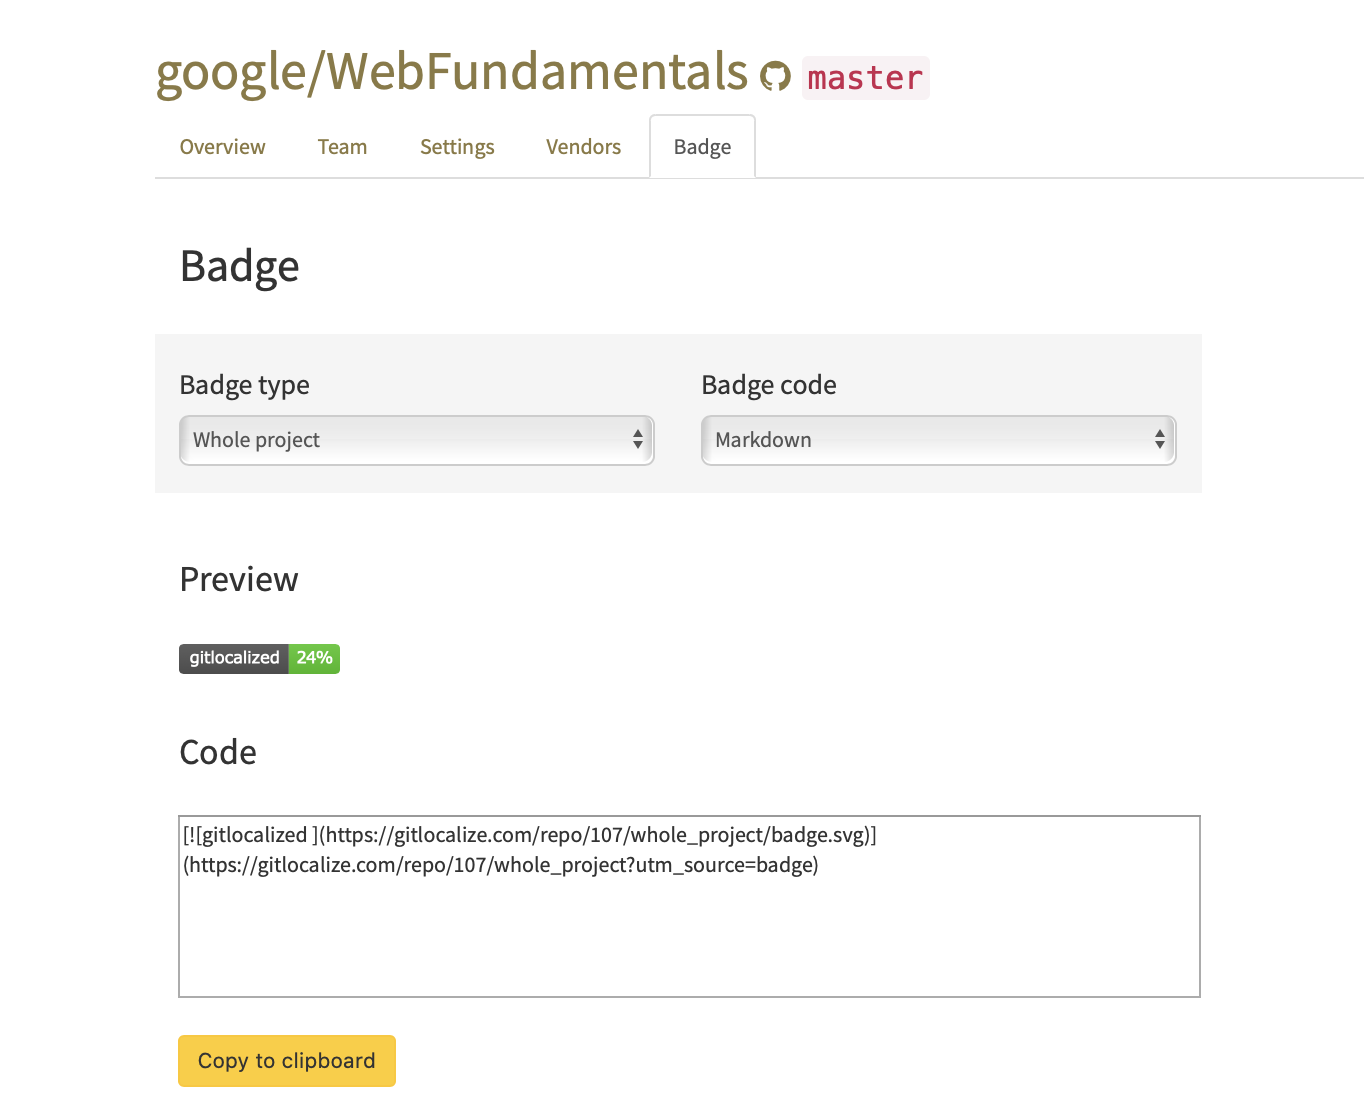 GitLocalized Badge